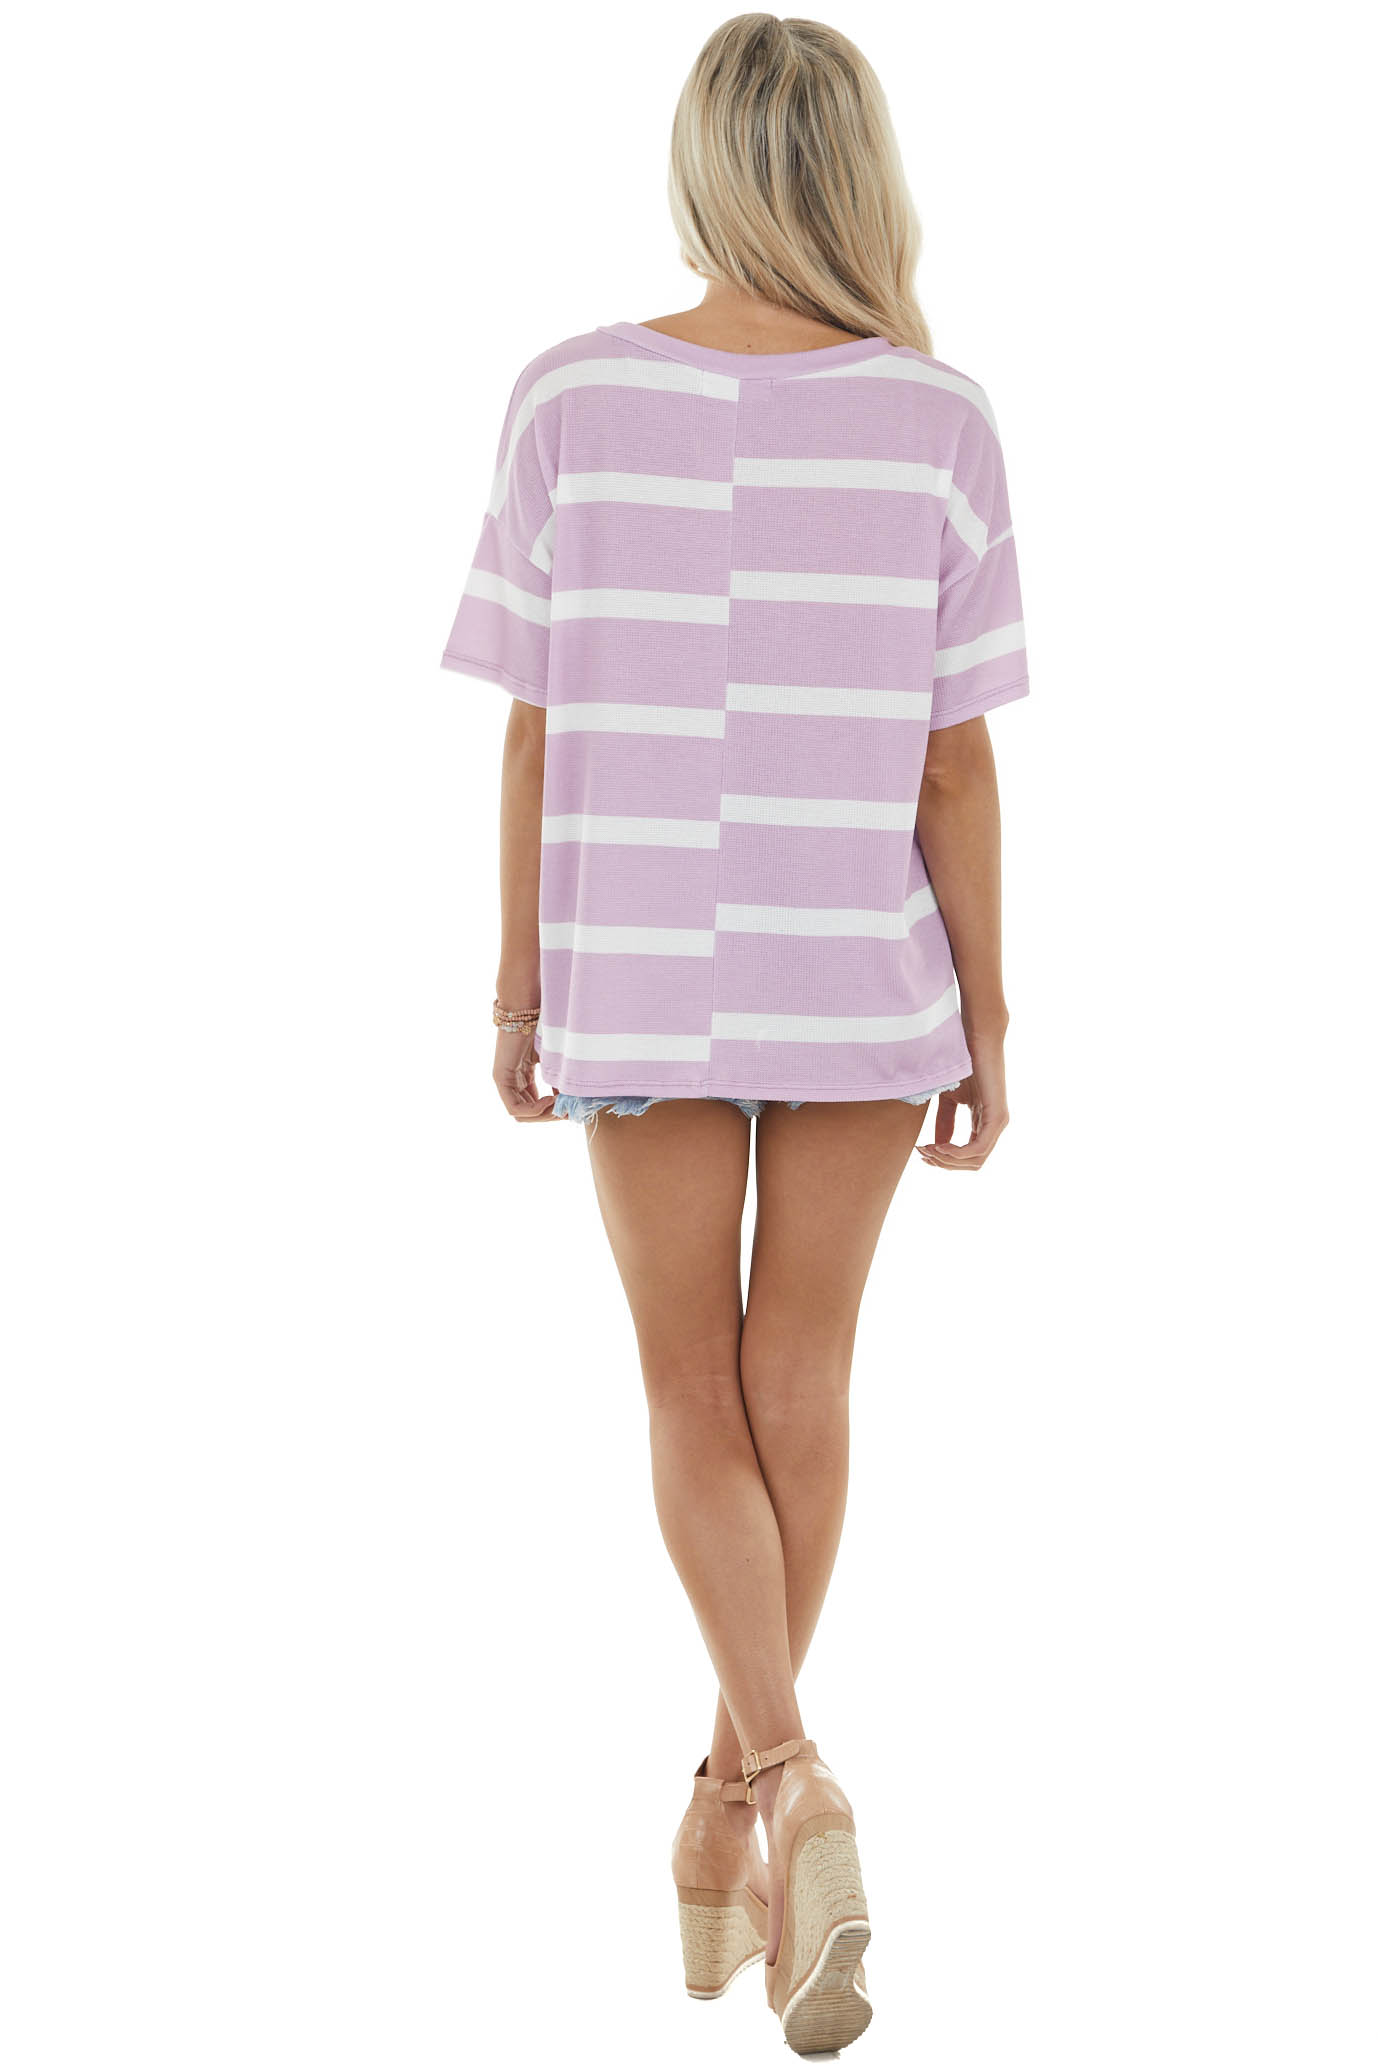 Orchid and Ivory Striped Short Sleeve Knit Top with V Stitch